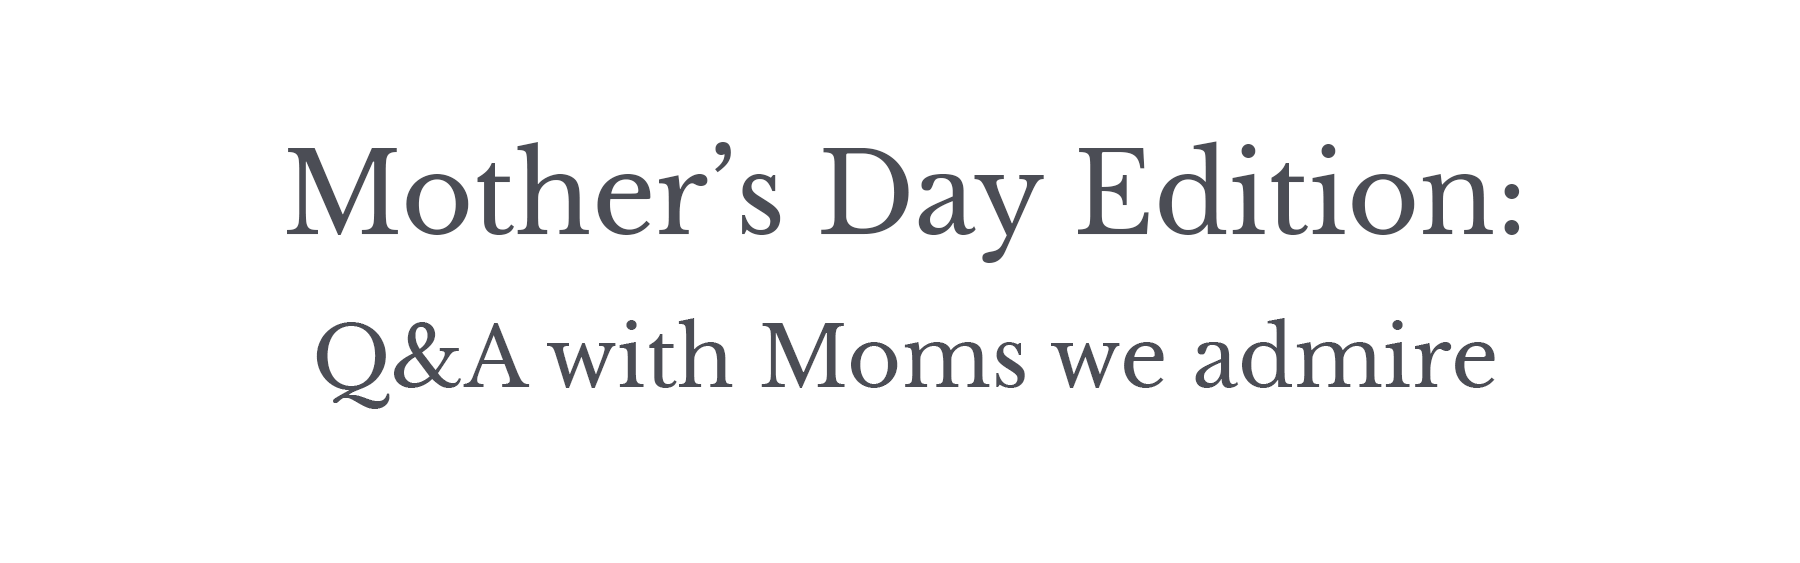 q&a mother's day edition